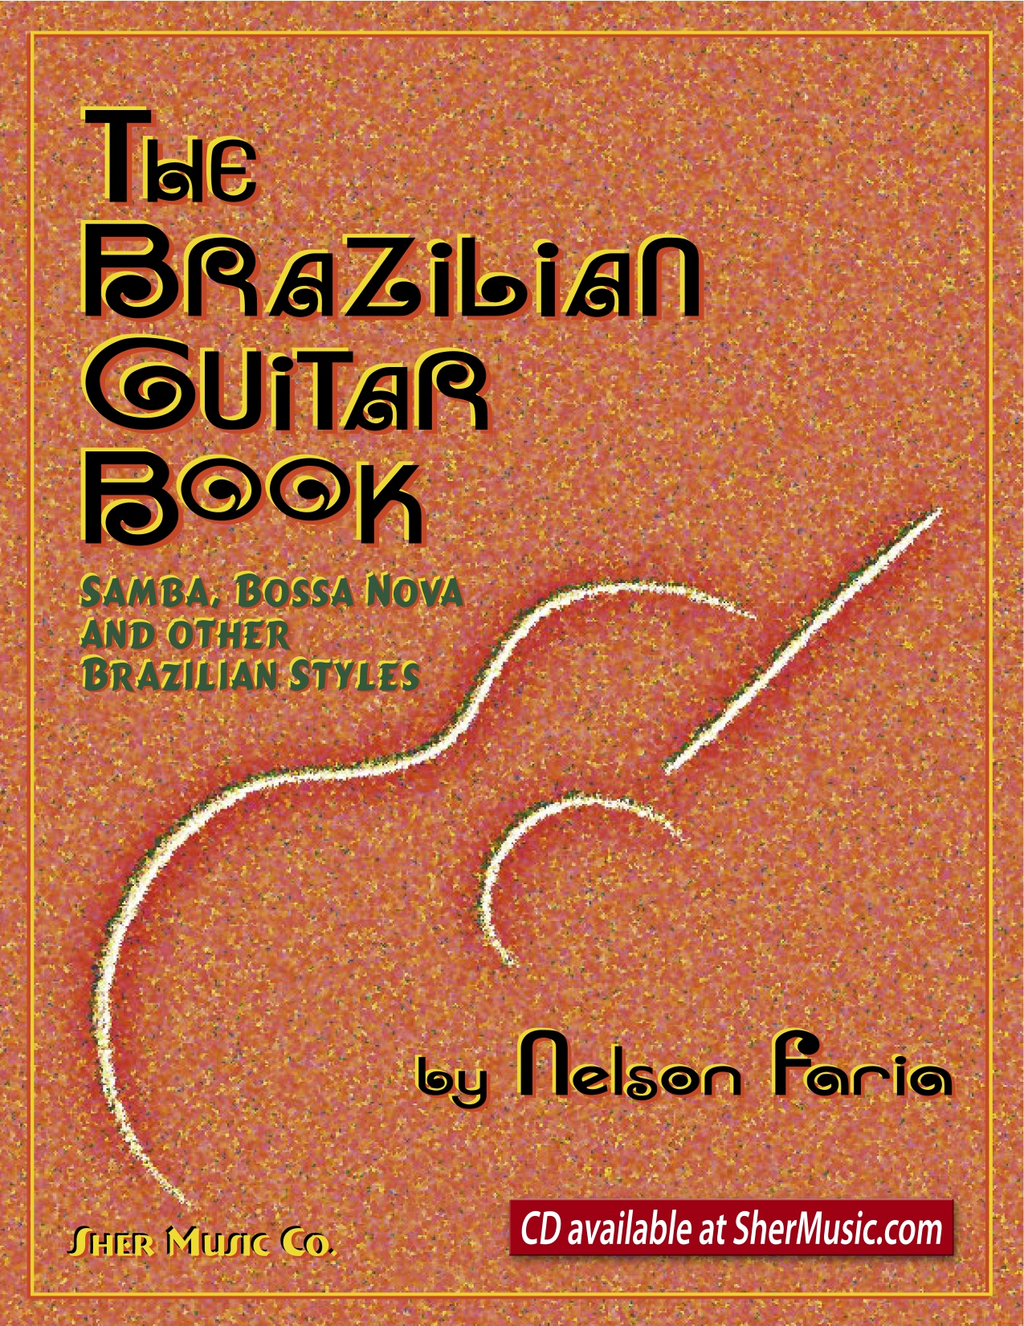 The Brazilian Guitar Book By: Nelson Faria,SHER Music